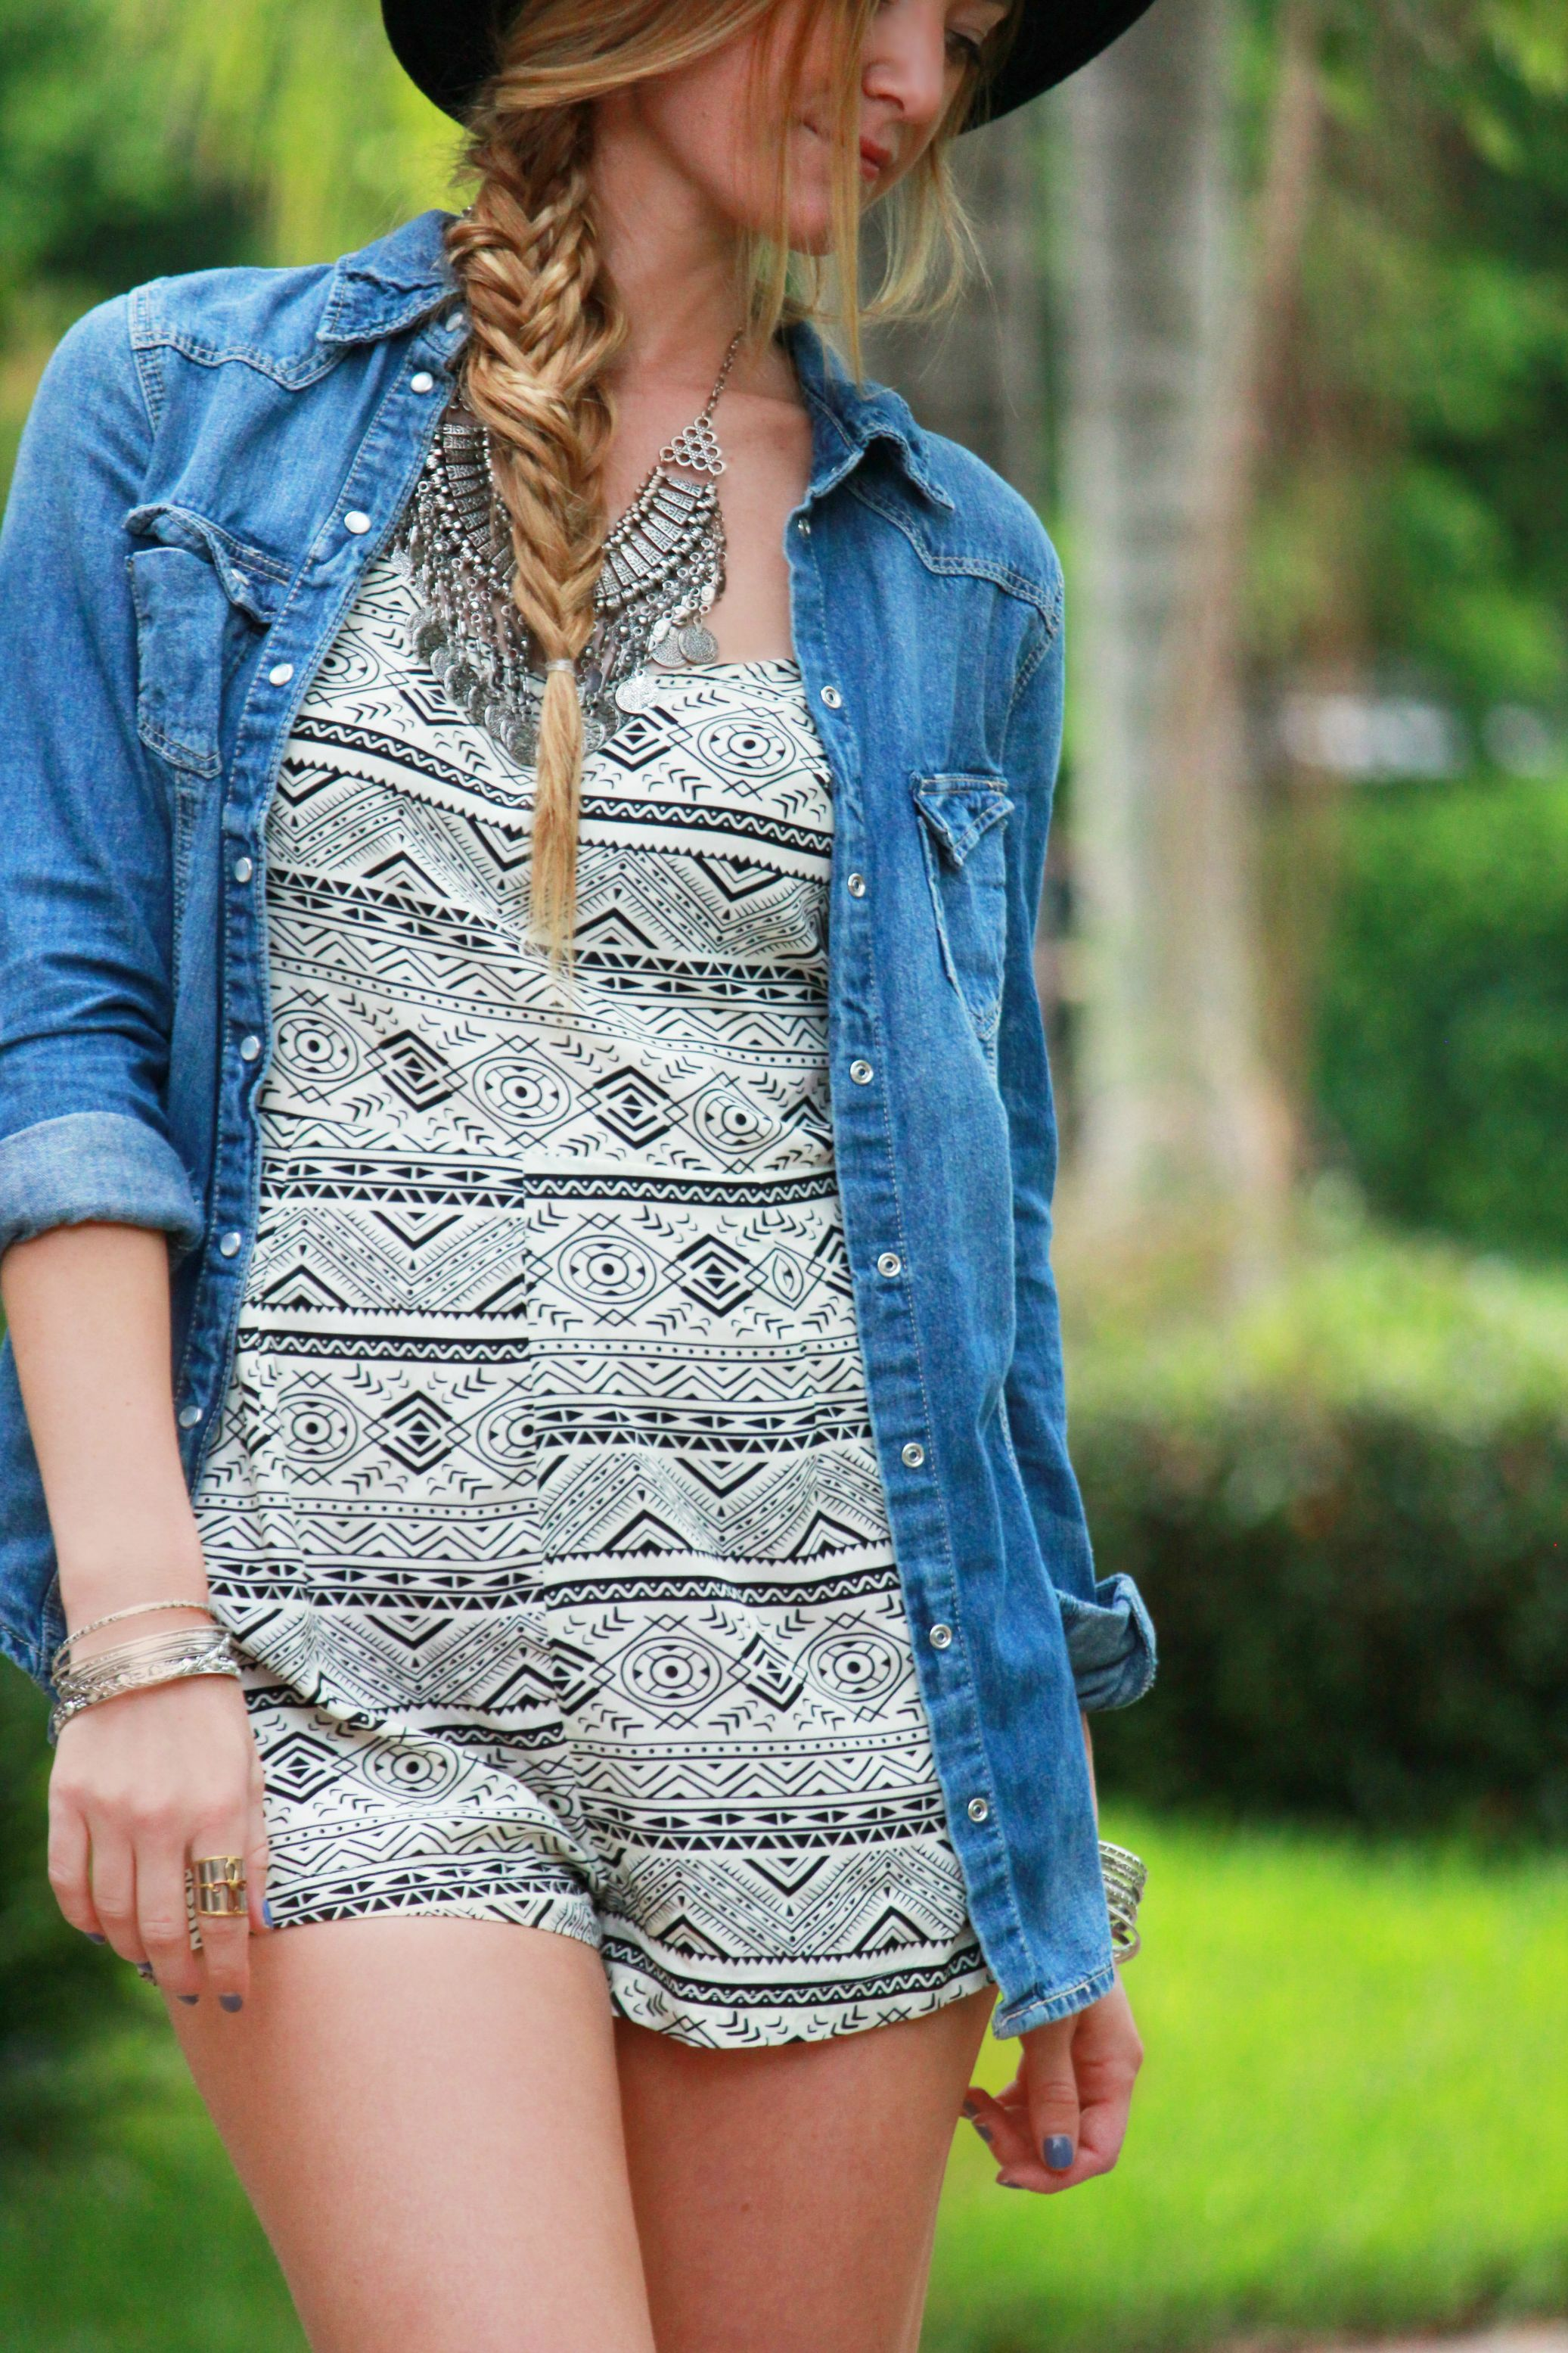 blush boutique romper, aztec romper, tribal romper, chambray shirt, target fedora, tjmaxx sandals, summer outfit, weekend outfit